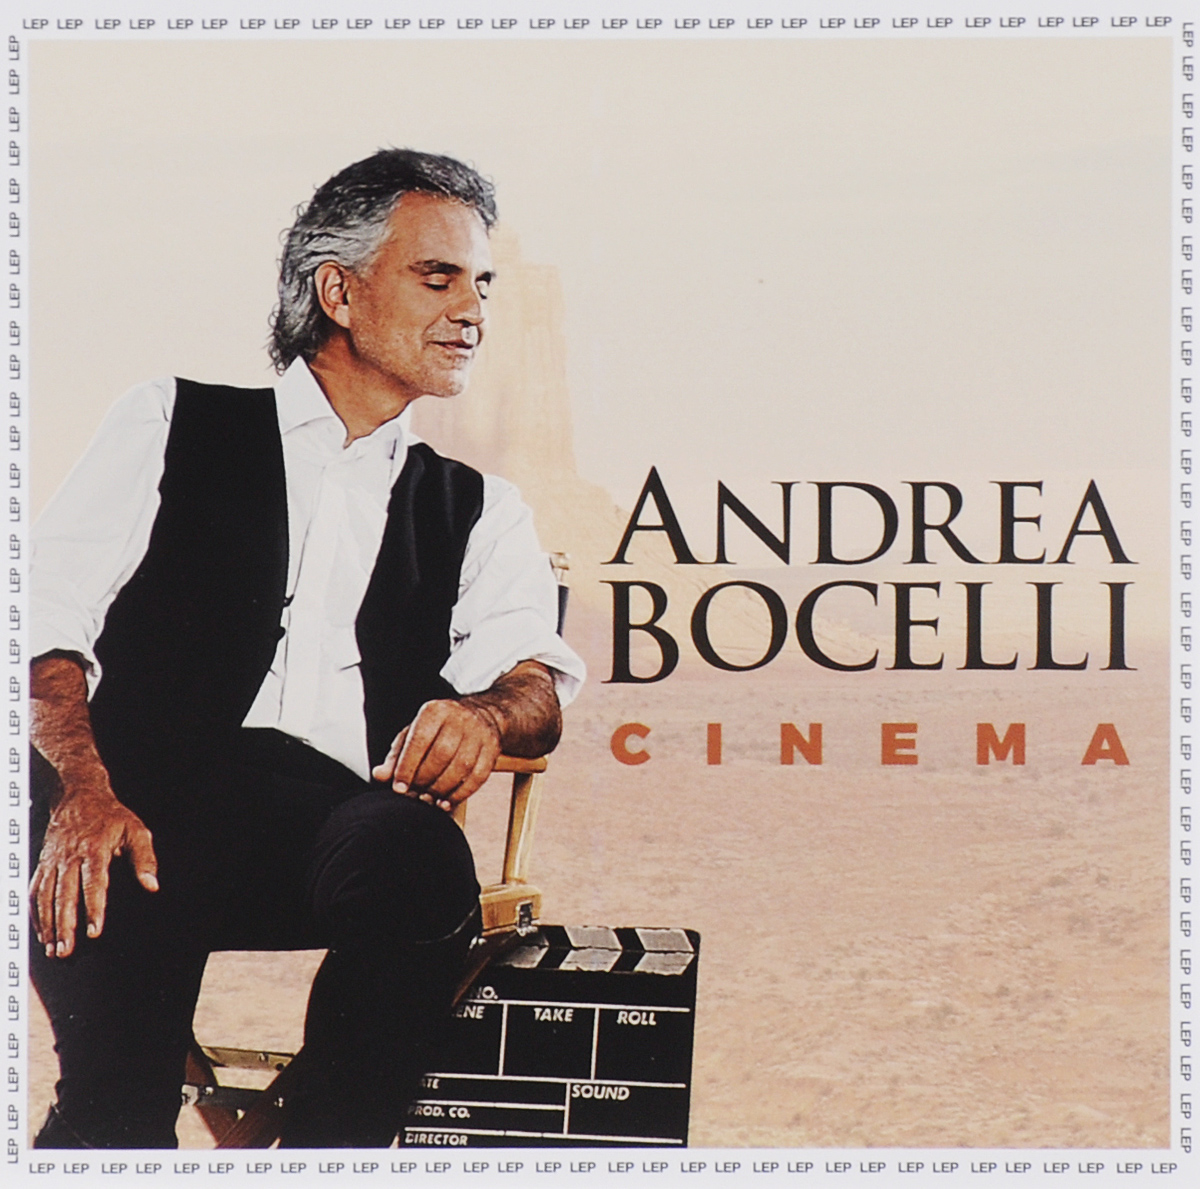 Андреа Бочелли Andrea Bocelli. Cinema андреа бочелли брин терфел марина домашенко дэльфин хэйдан тьерри феликс nouvel orchestre philharmonique de radio france мюнг вун чунг andrea bocelli bizet carmen 2 cd